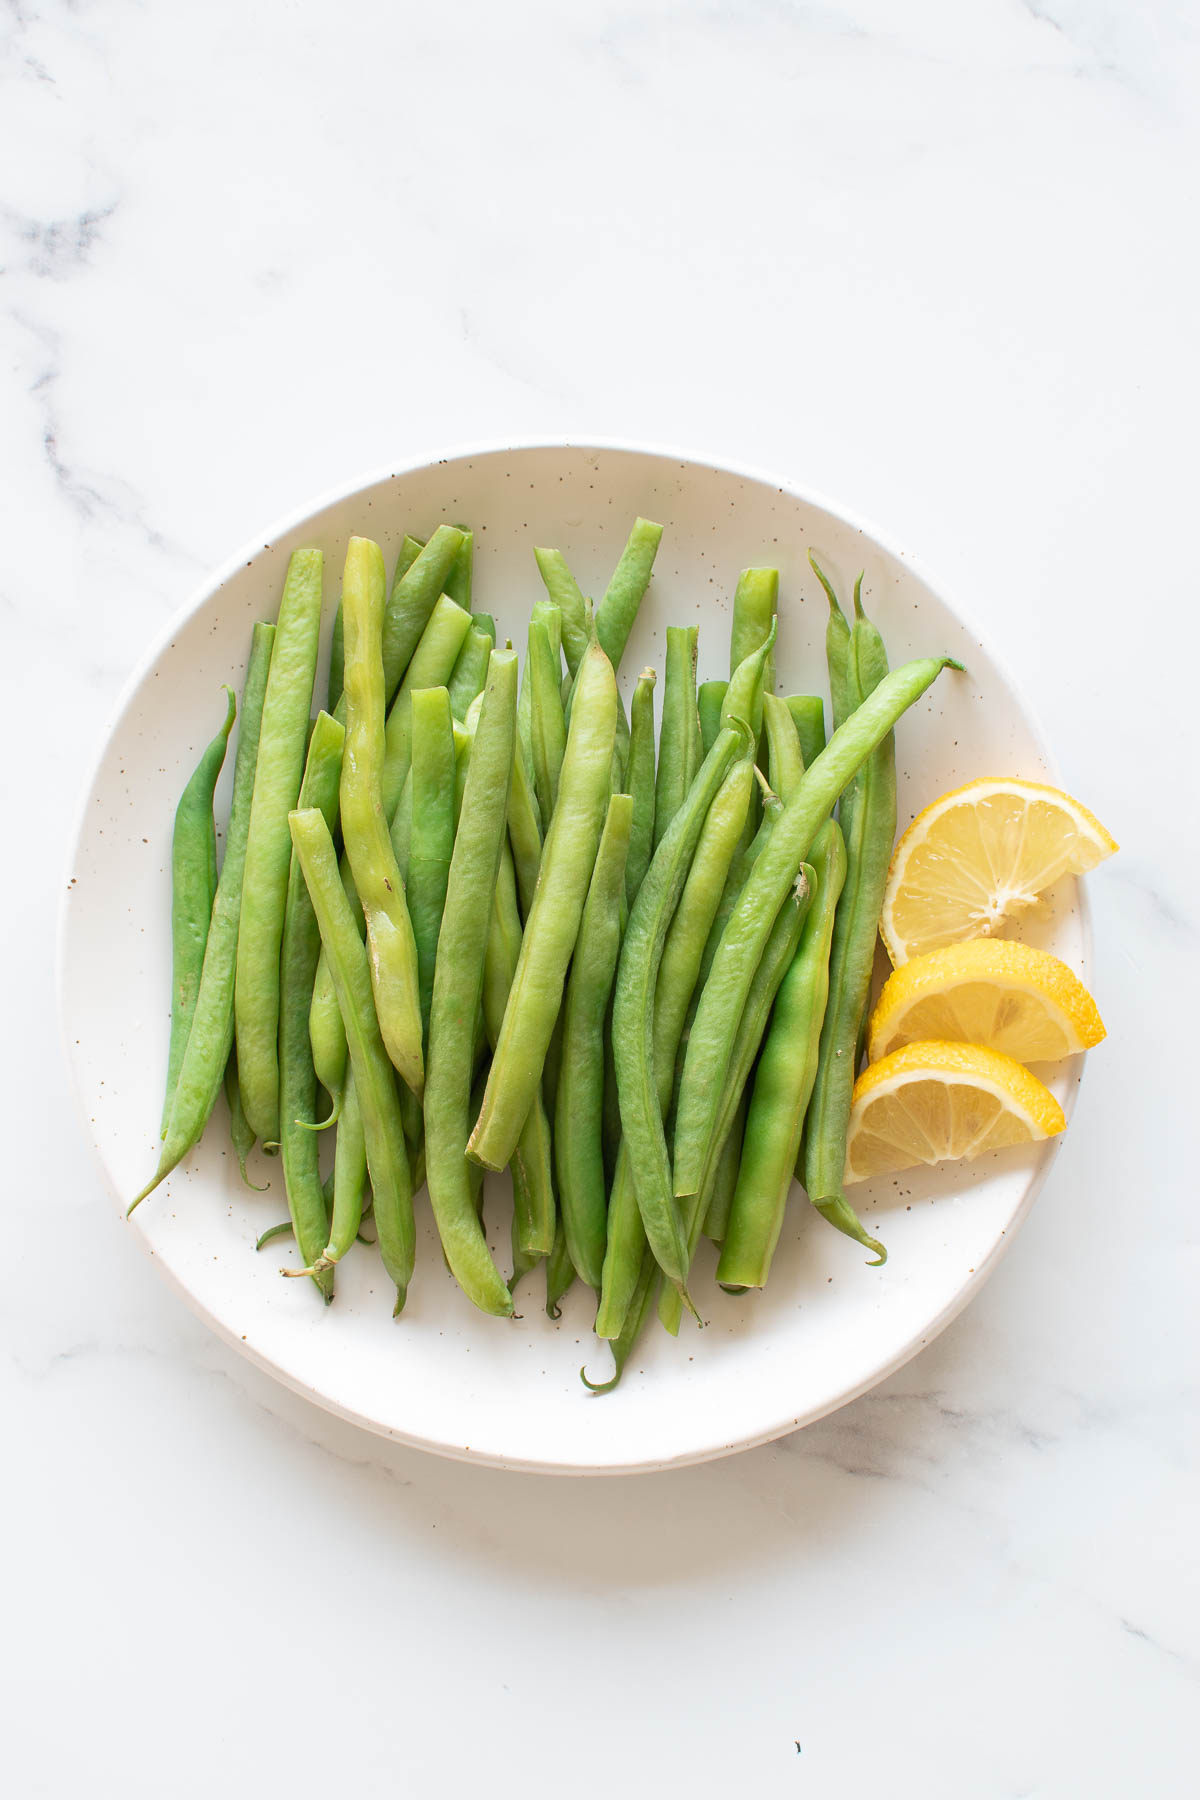 A plate of steamed green beans with lemon wedges.